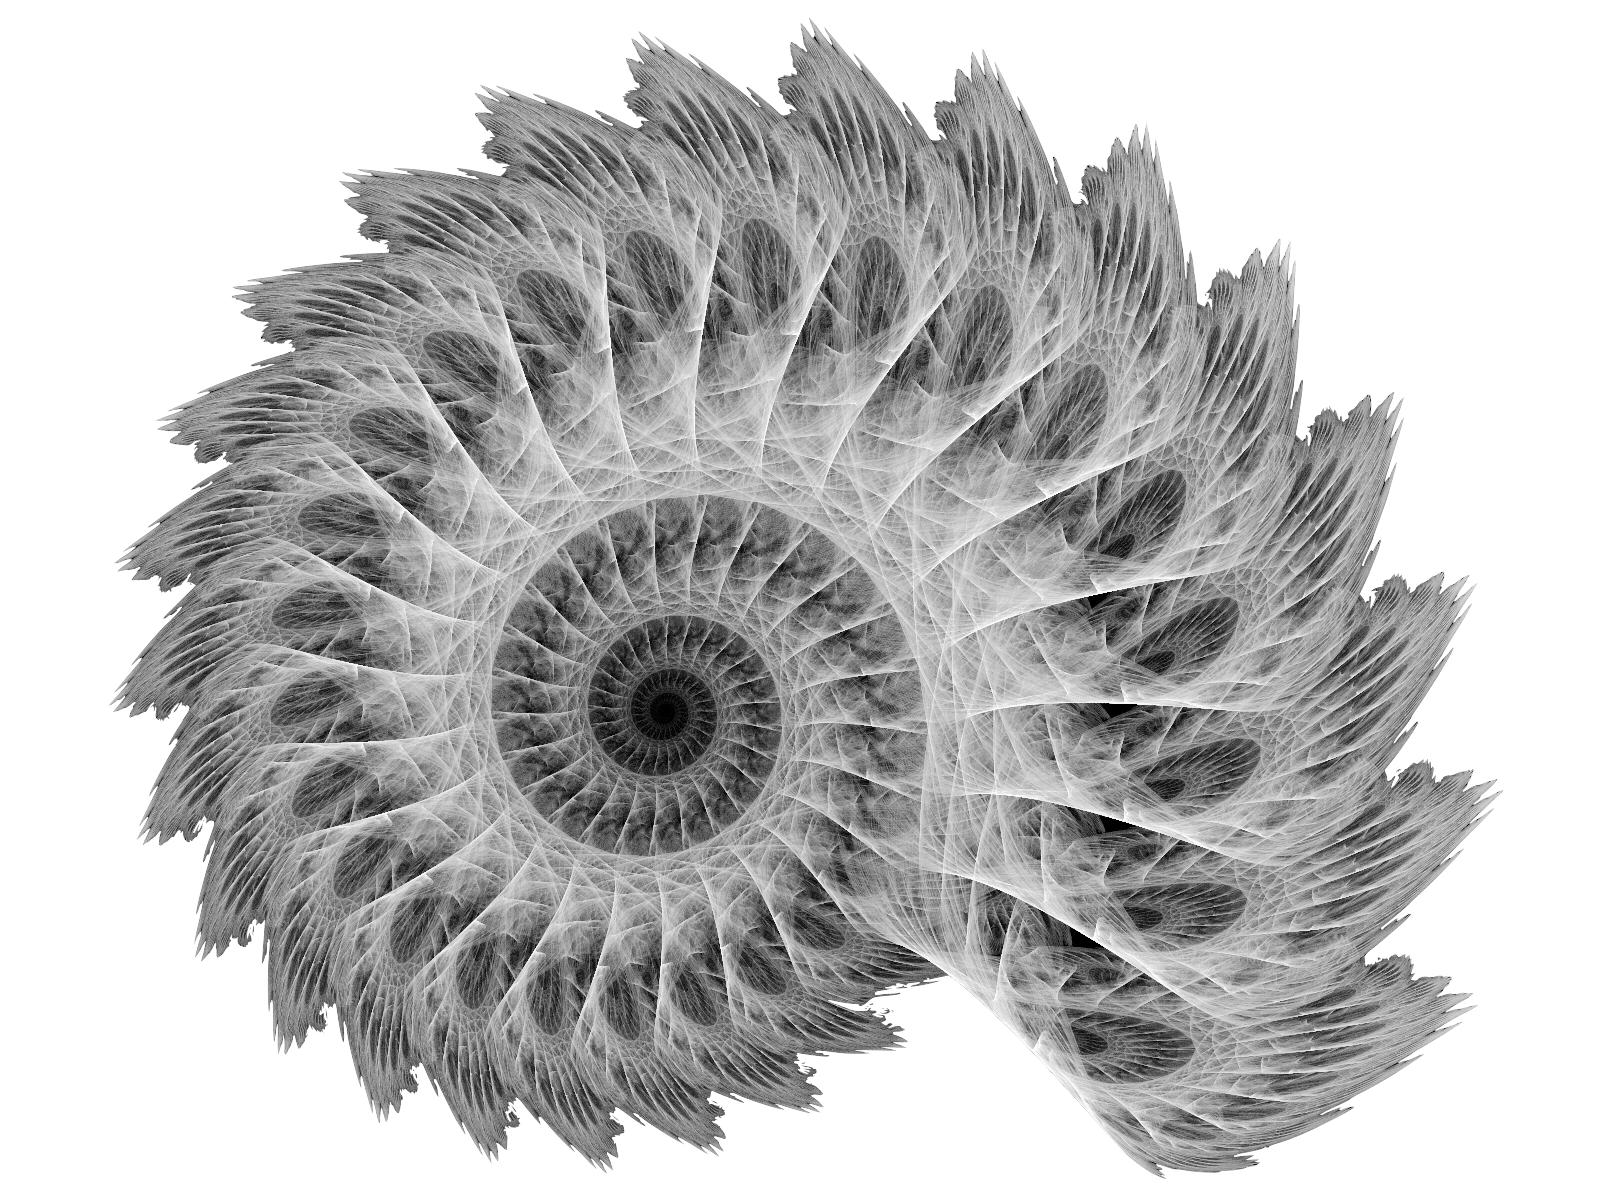 white_spiral_by_thelma1-d3htrvt.jpg